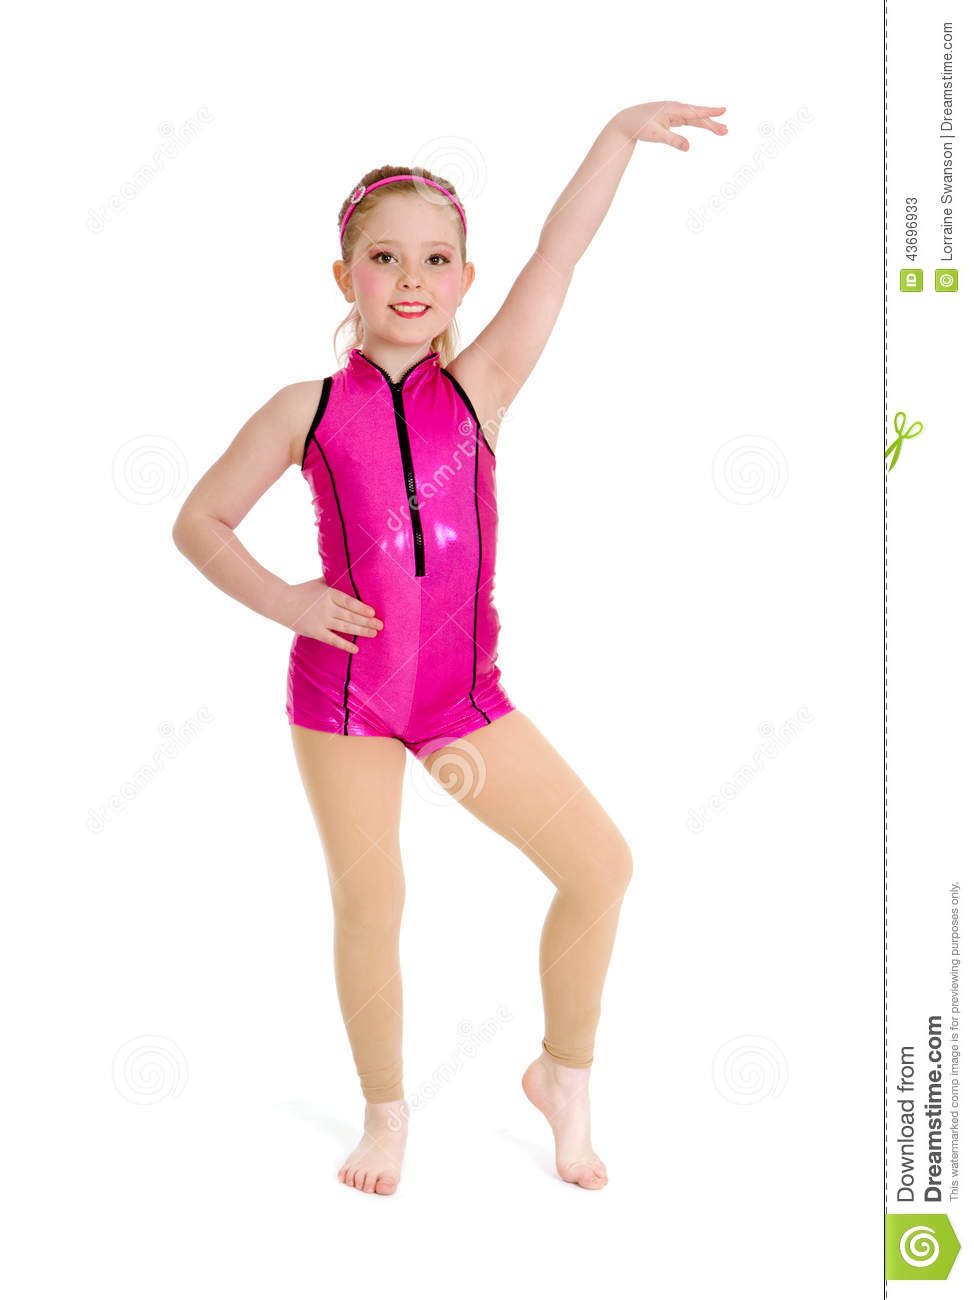 Jazz Dancer Girl in Pink on